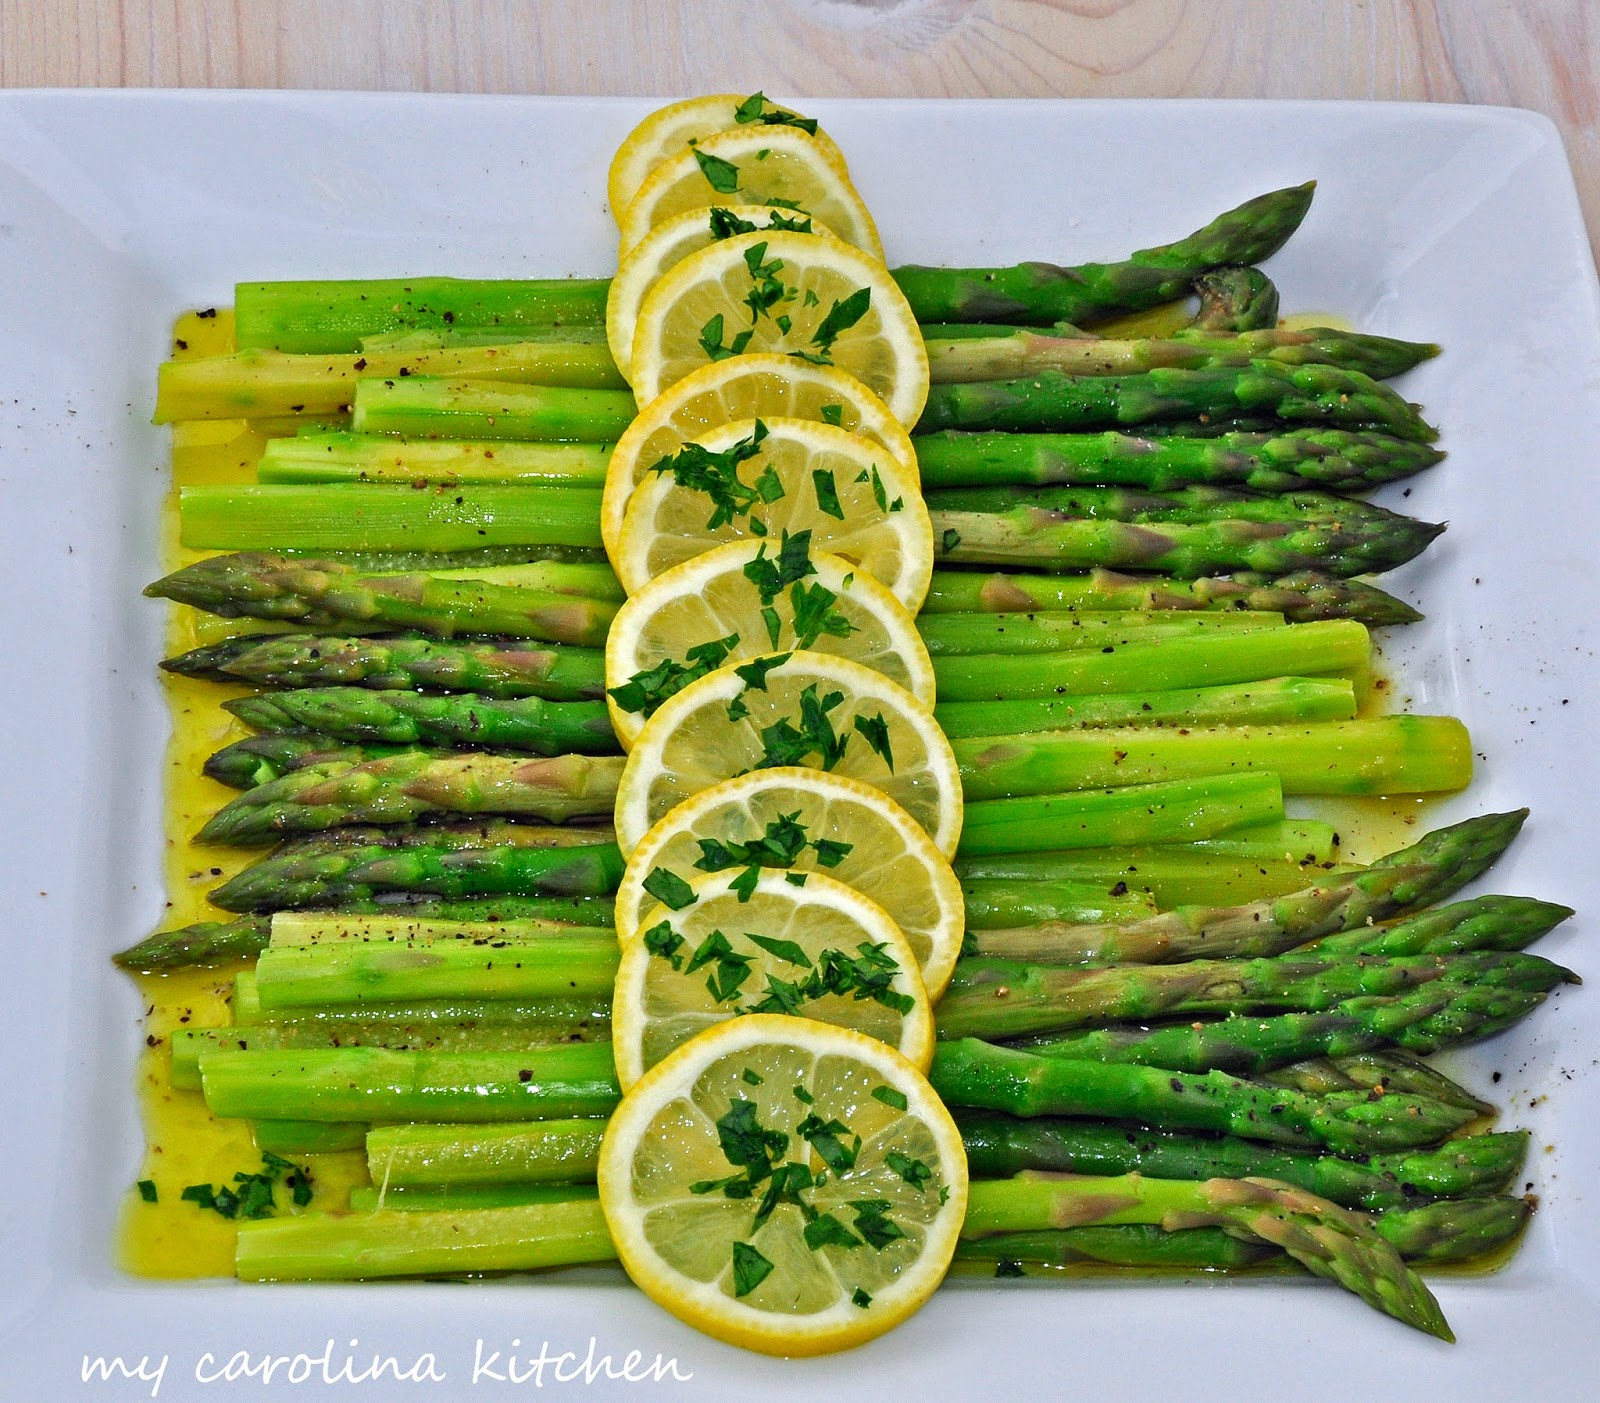 My Carolina Kitchen 6 Easy Asparagus Recipes For Easter